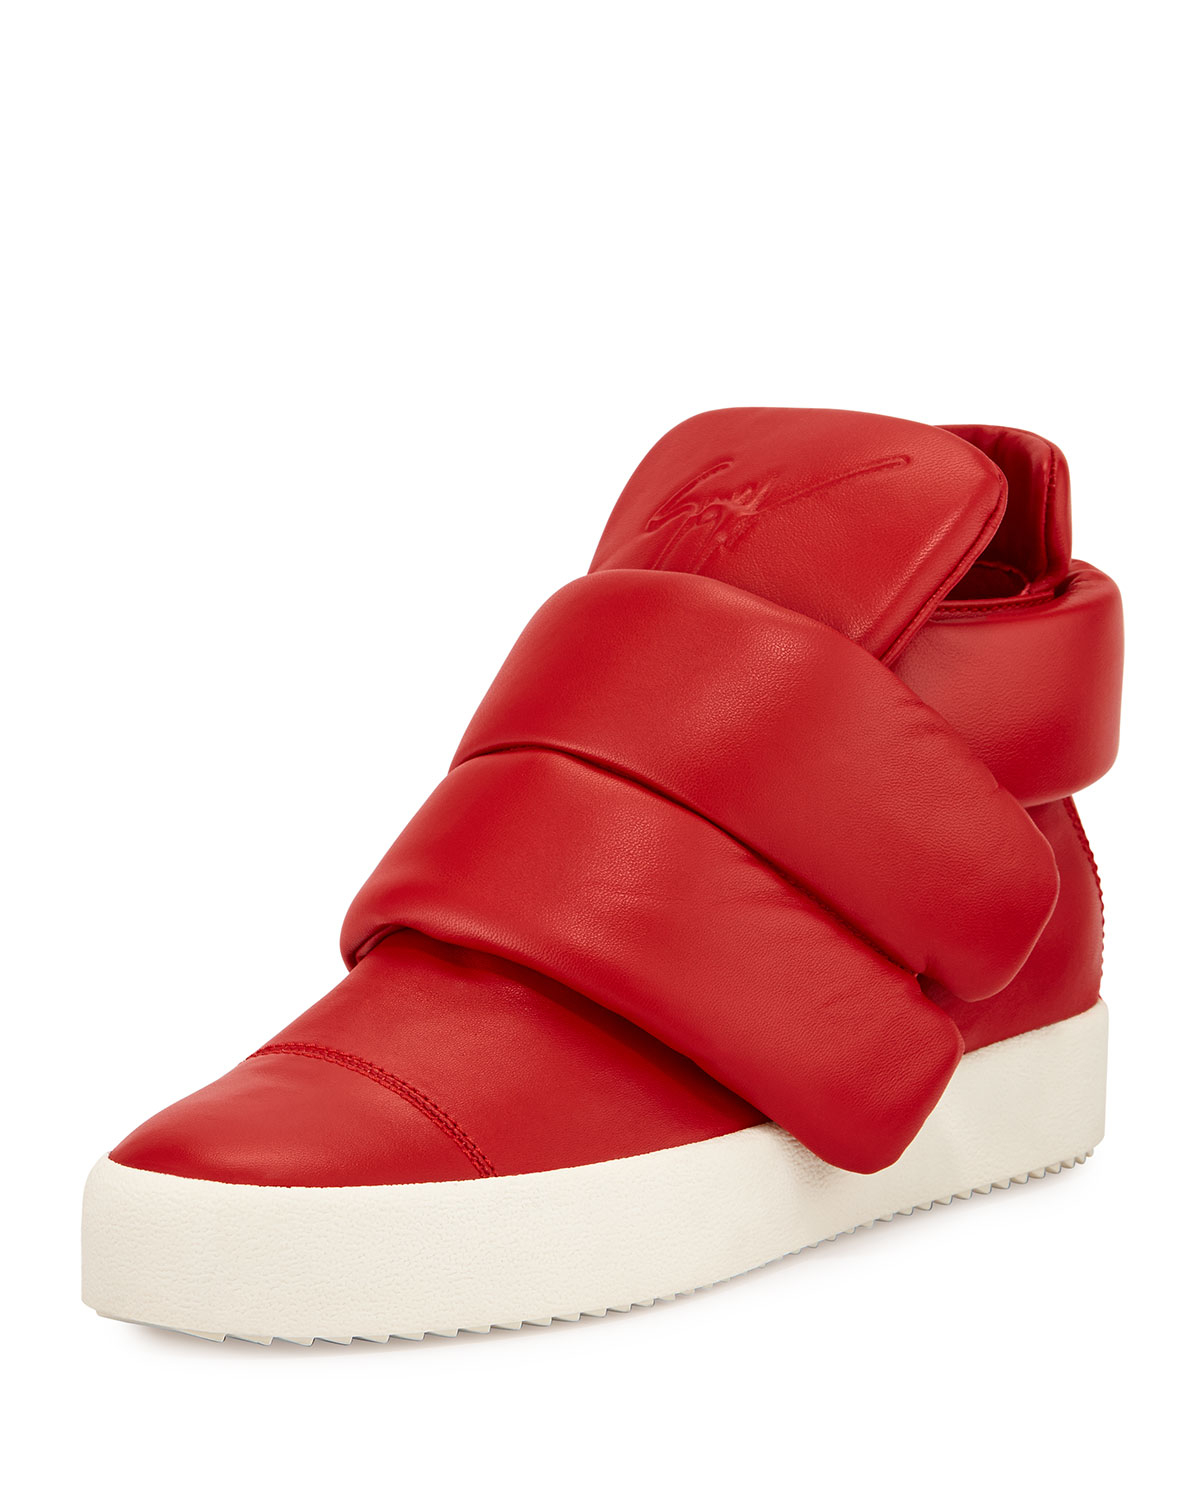 Giuseppe Zanotti Cesar Leather High Top Sneakers In Red